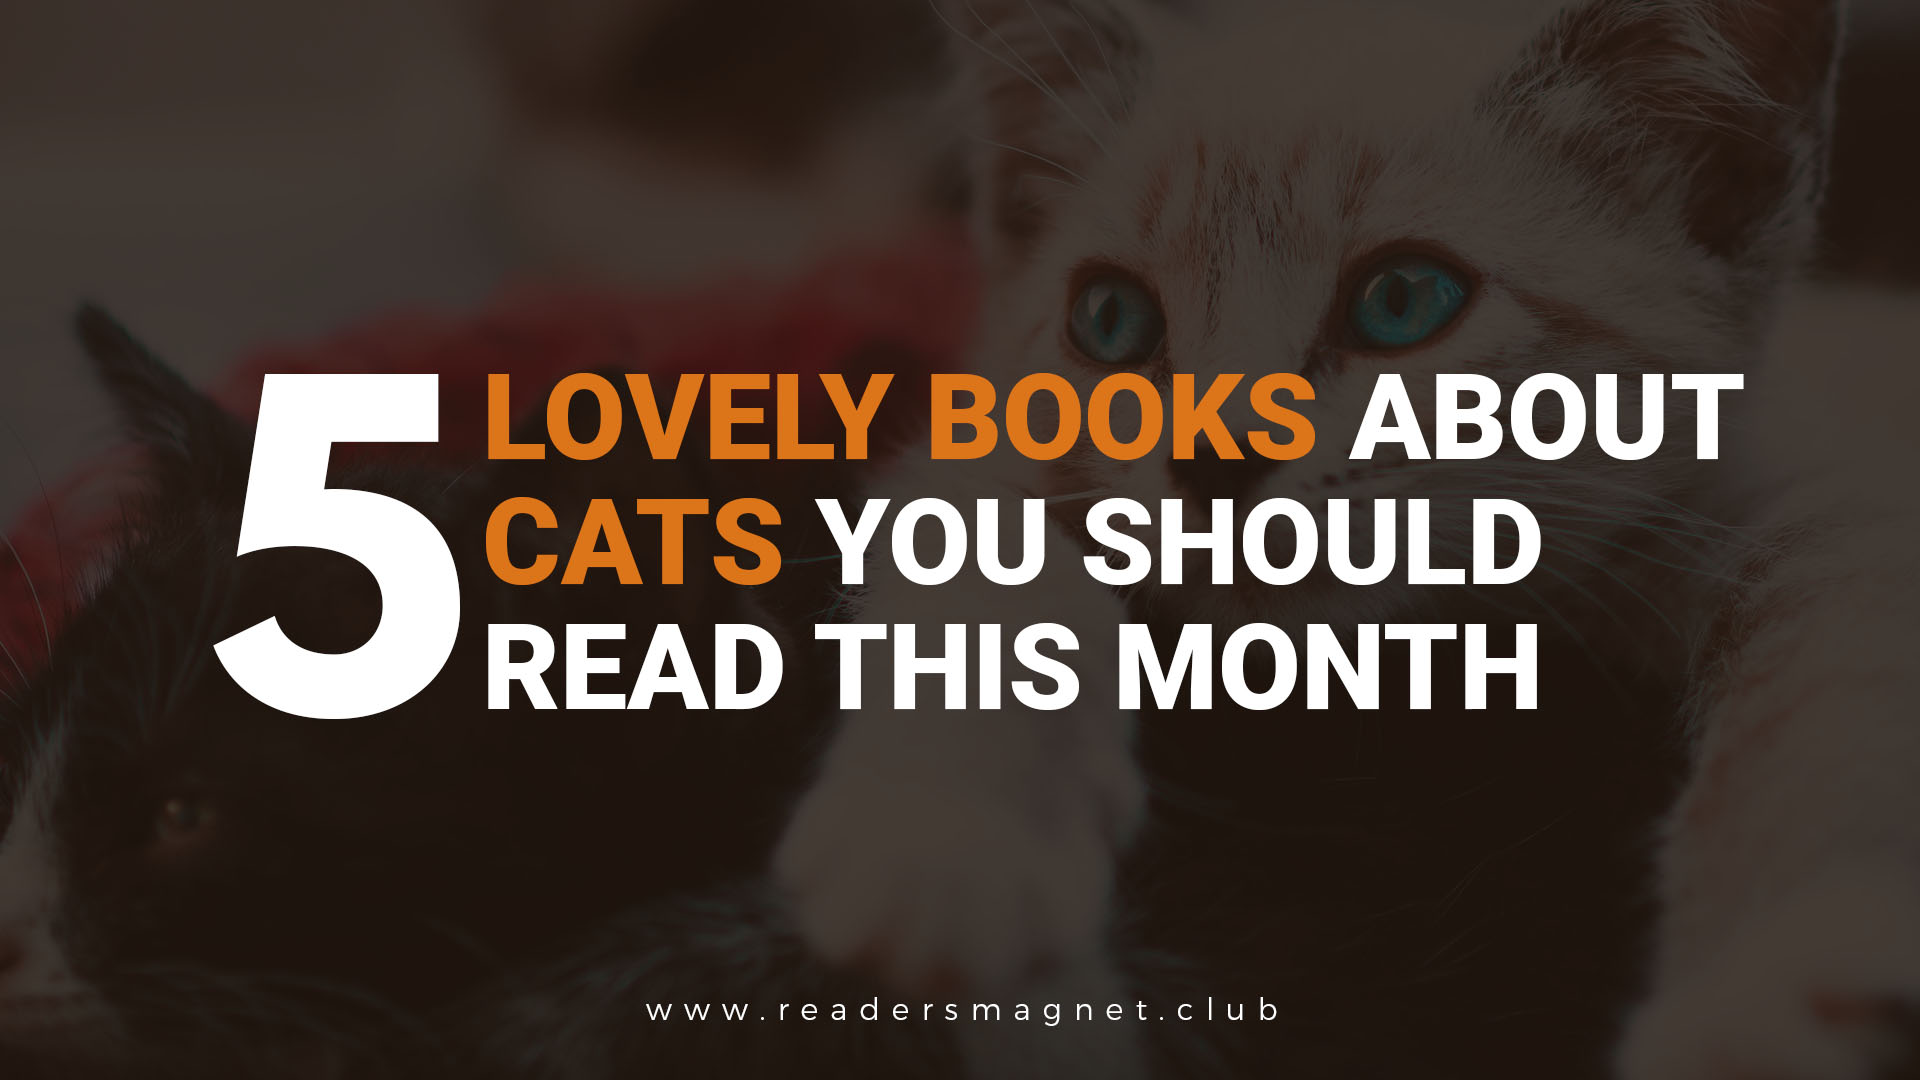 Five Lovely Books About Cats You Should Read This Month (1) banner